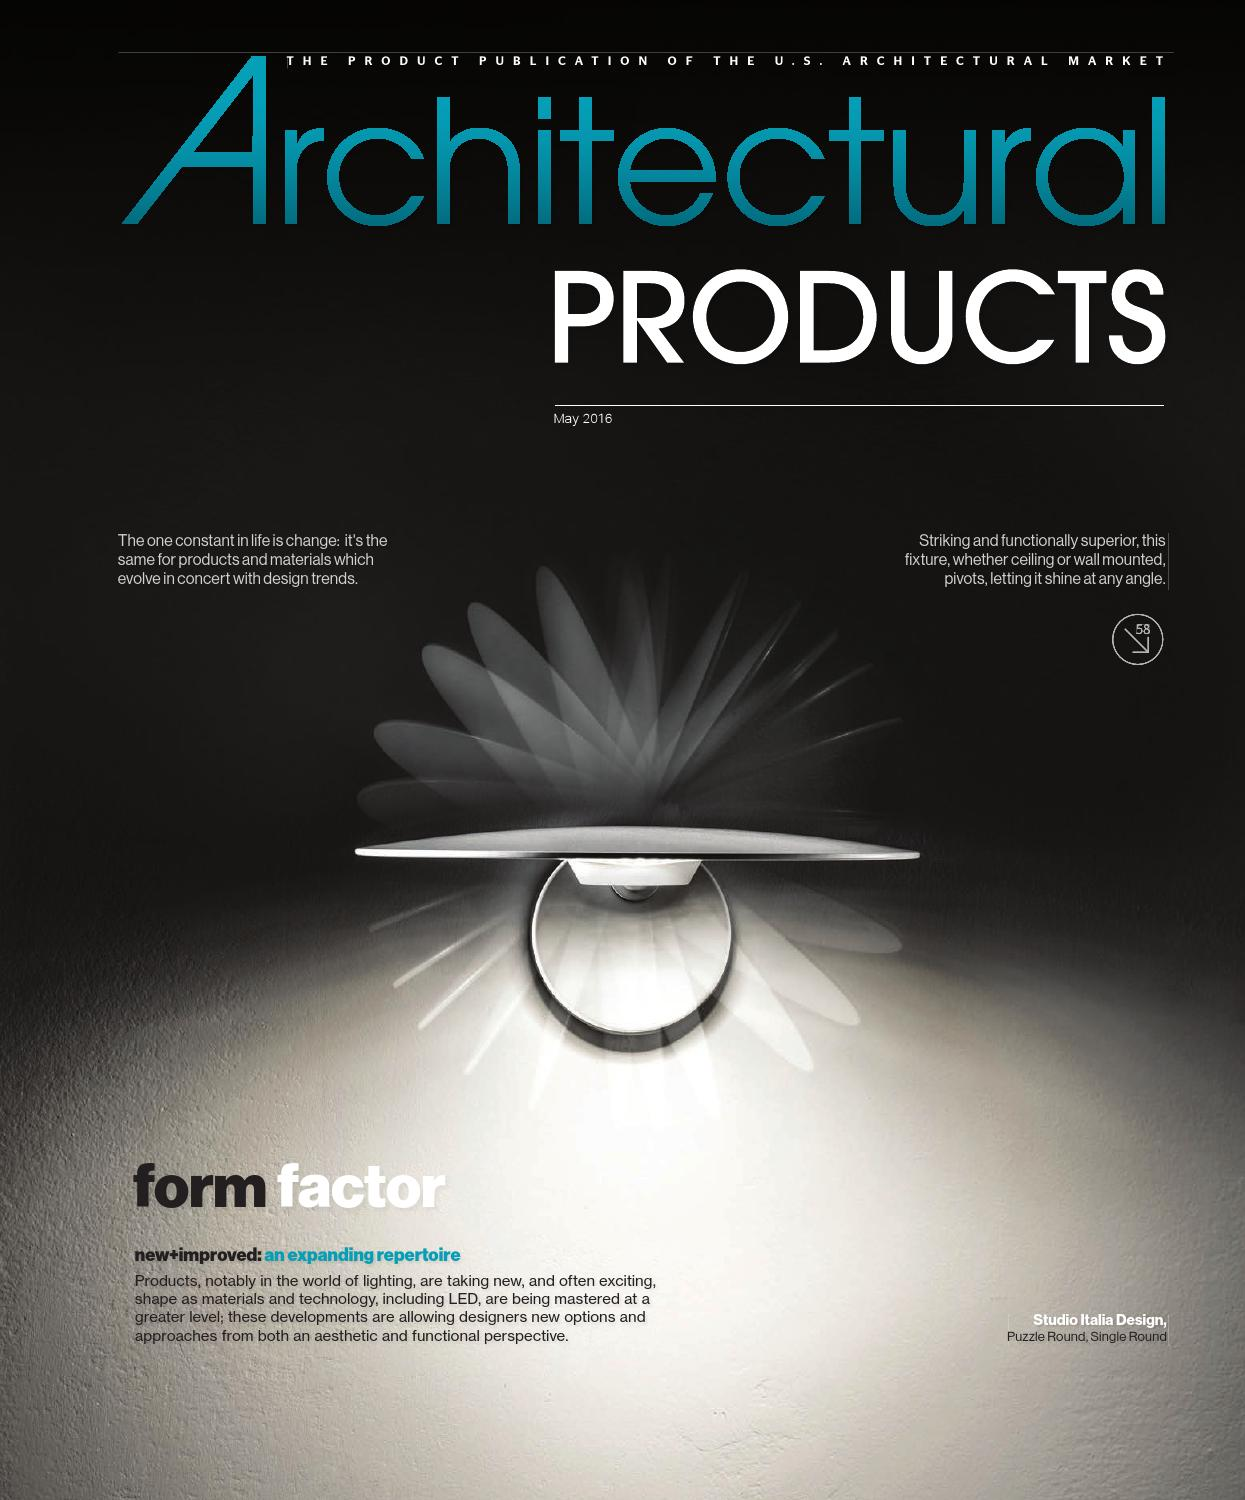 architectural products may 2016 by construction business media issuu